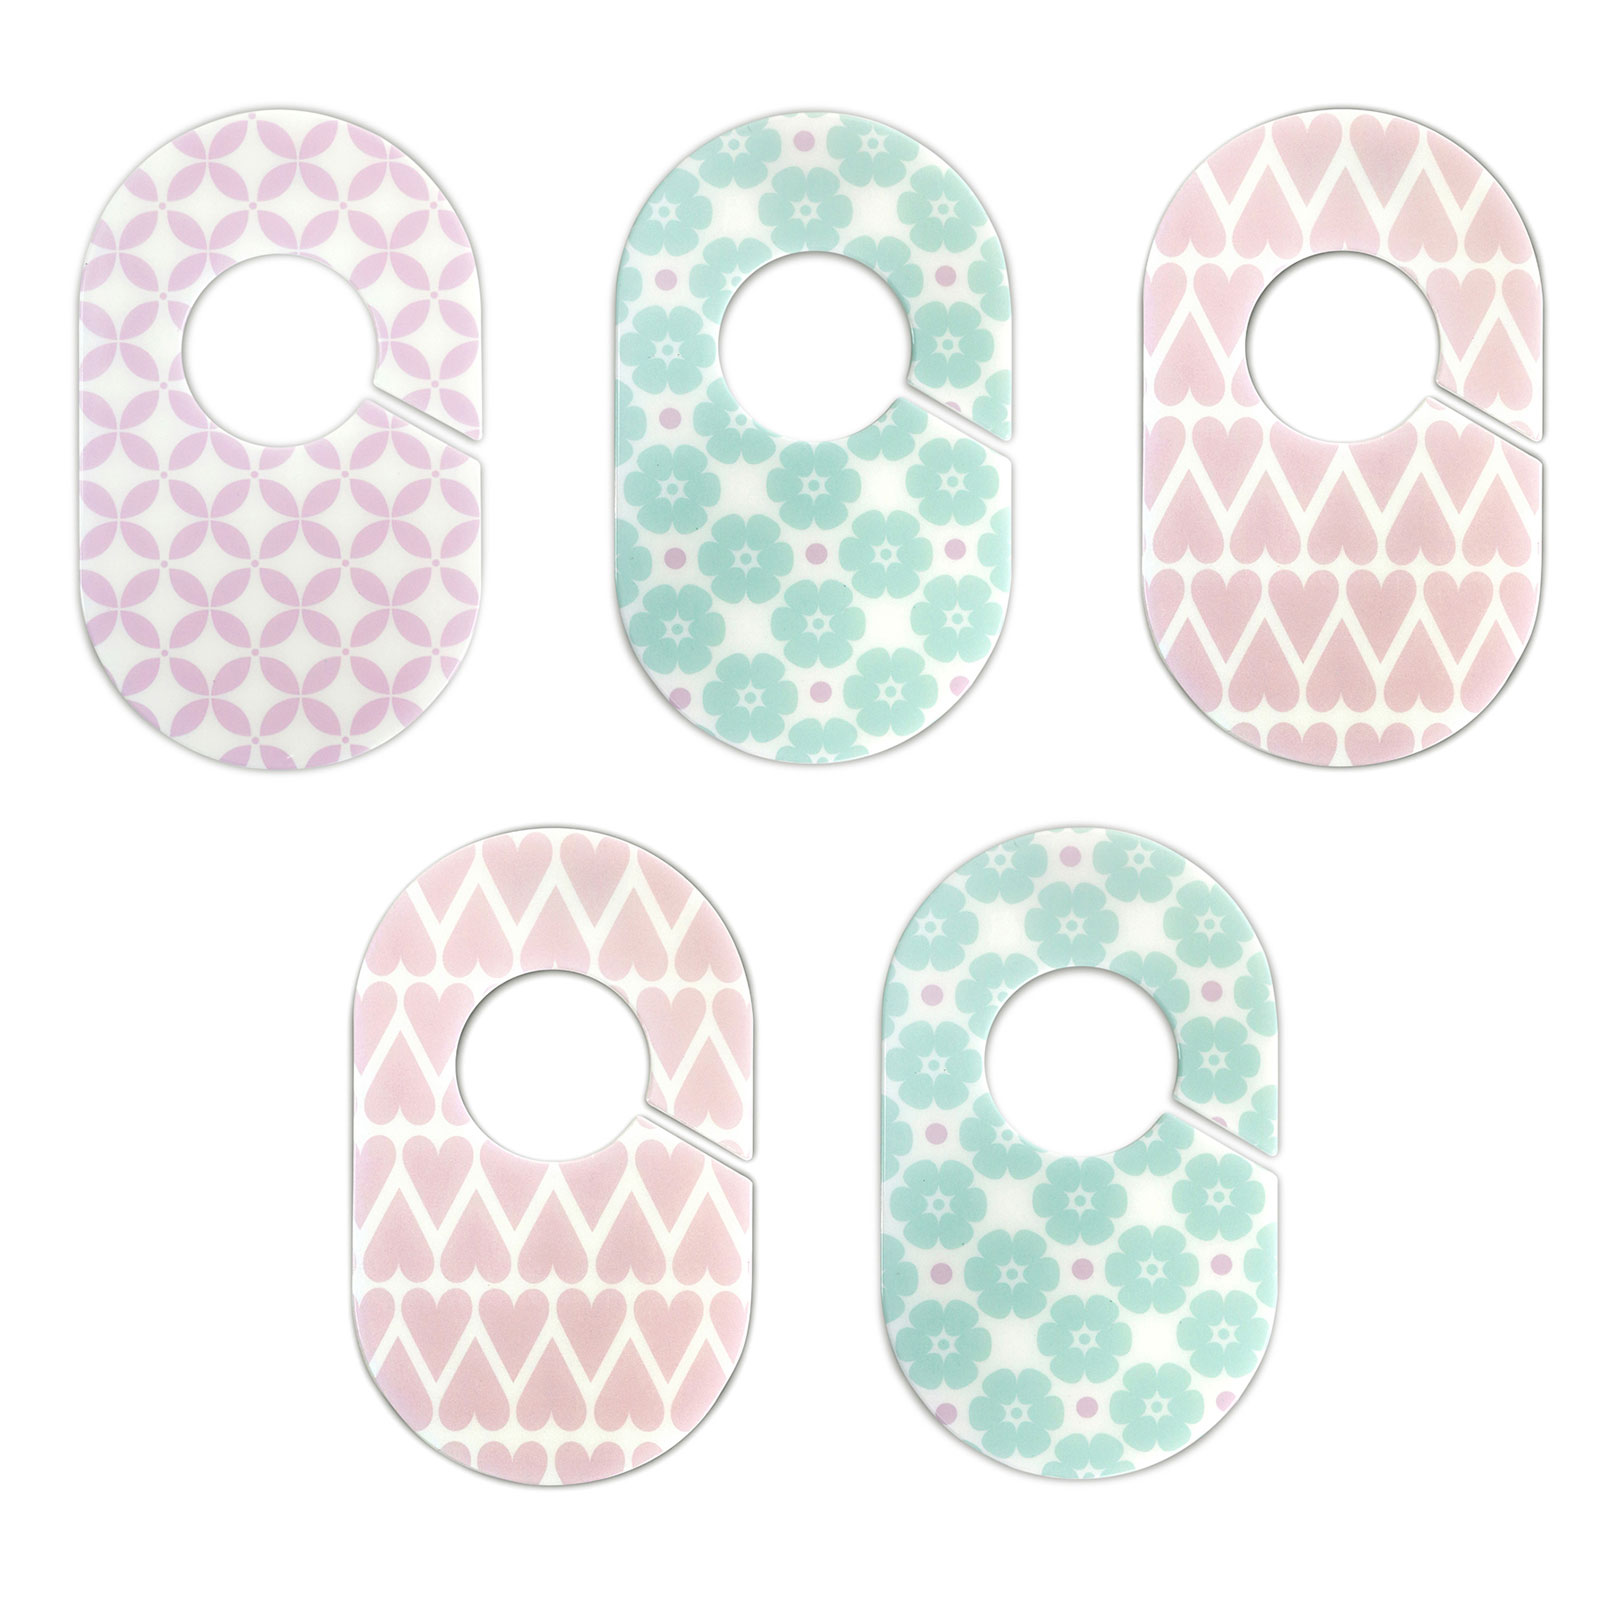 Little Haven Nursery Closet Organizers Dividers - Pink and Lilac Green Flowers and Hearts - Set of 5 Plastic Baby Closet Rod Dividers